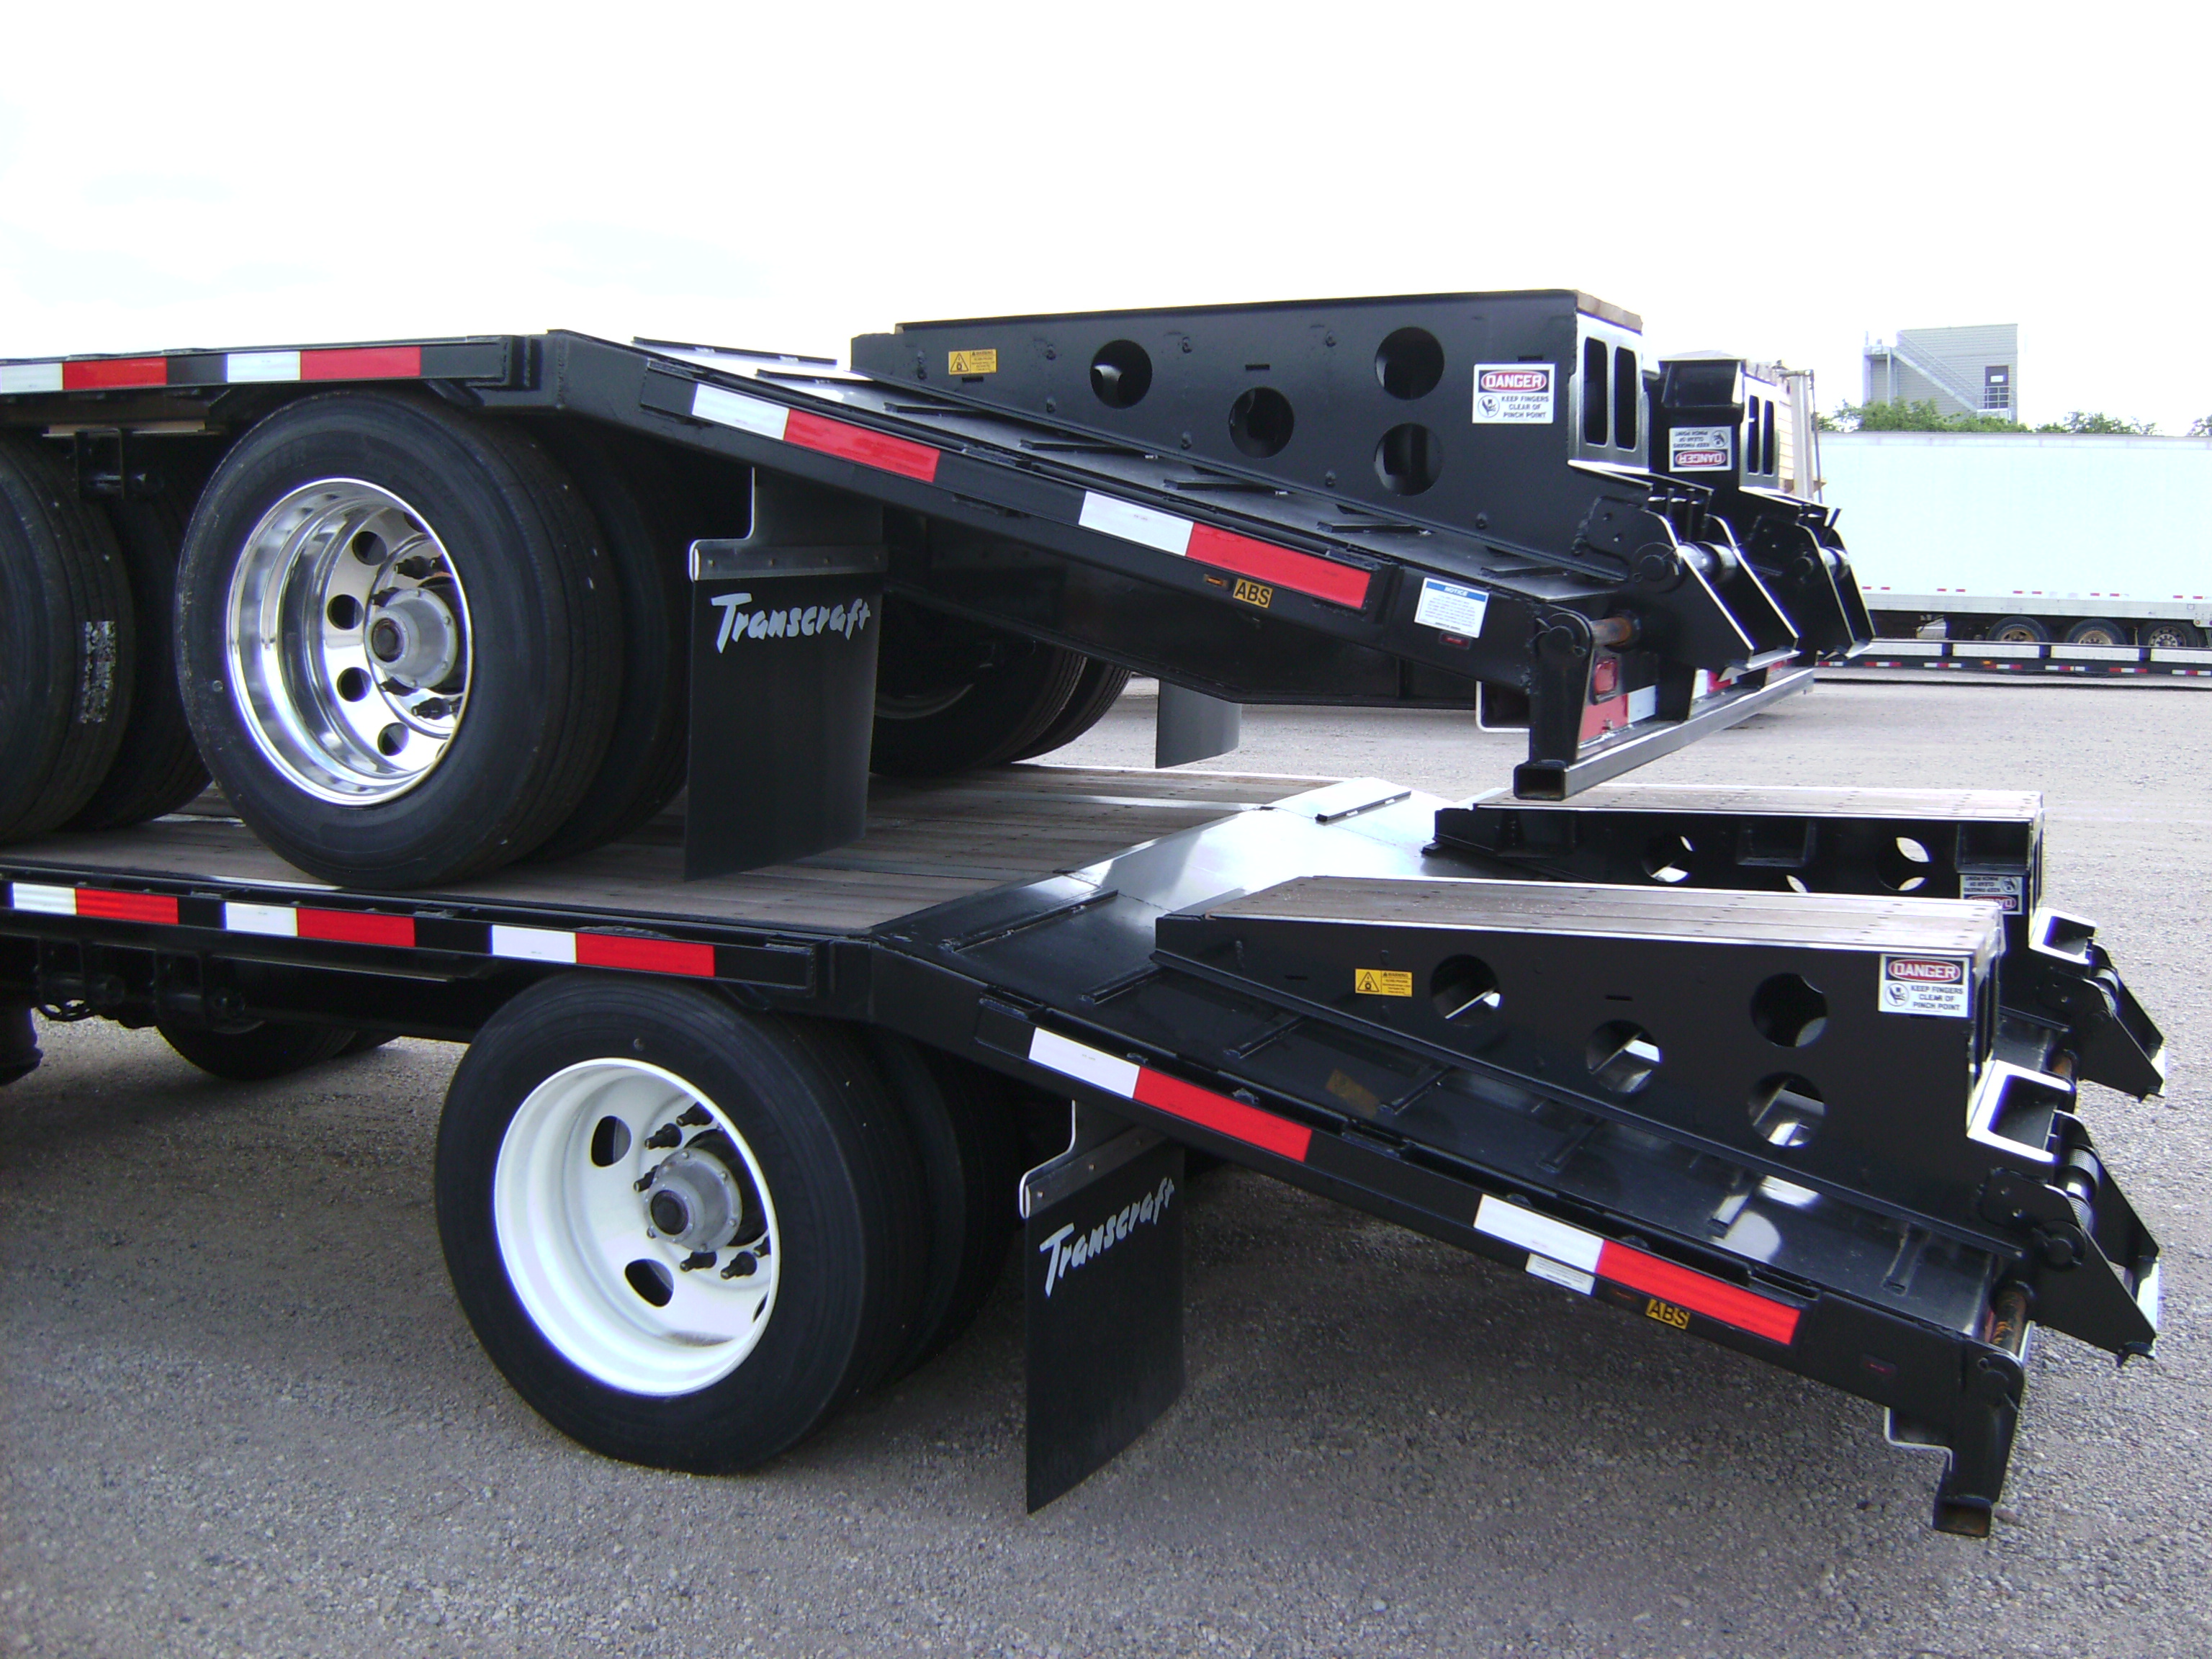 http://www.semitrailersalesandleasing.com/image/cache/2018_Transcraft_48x102_dropdeck_w_ramps_004.JPG Image